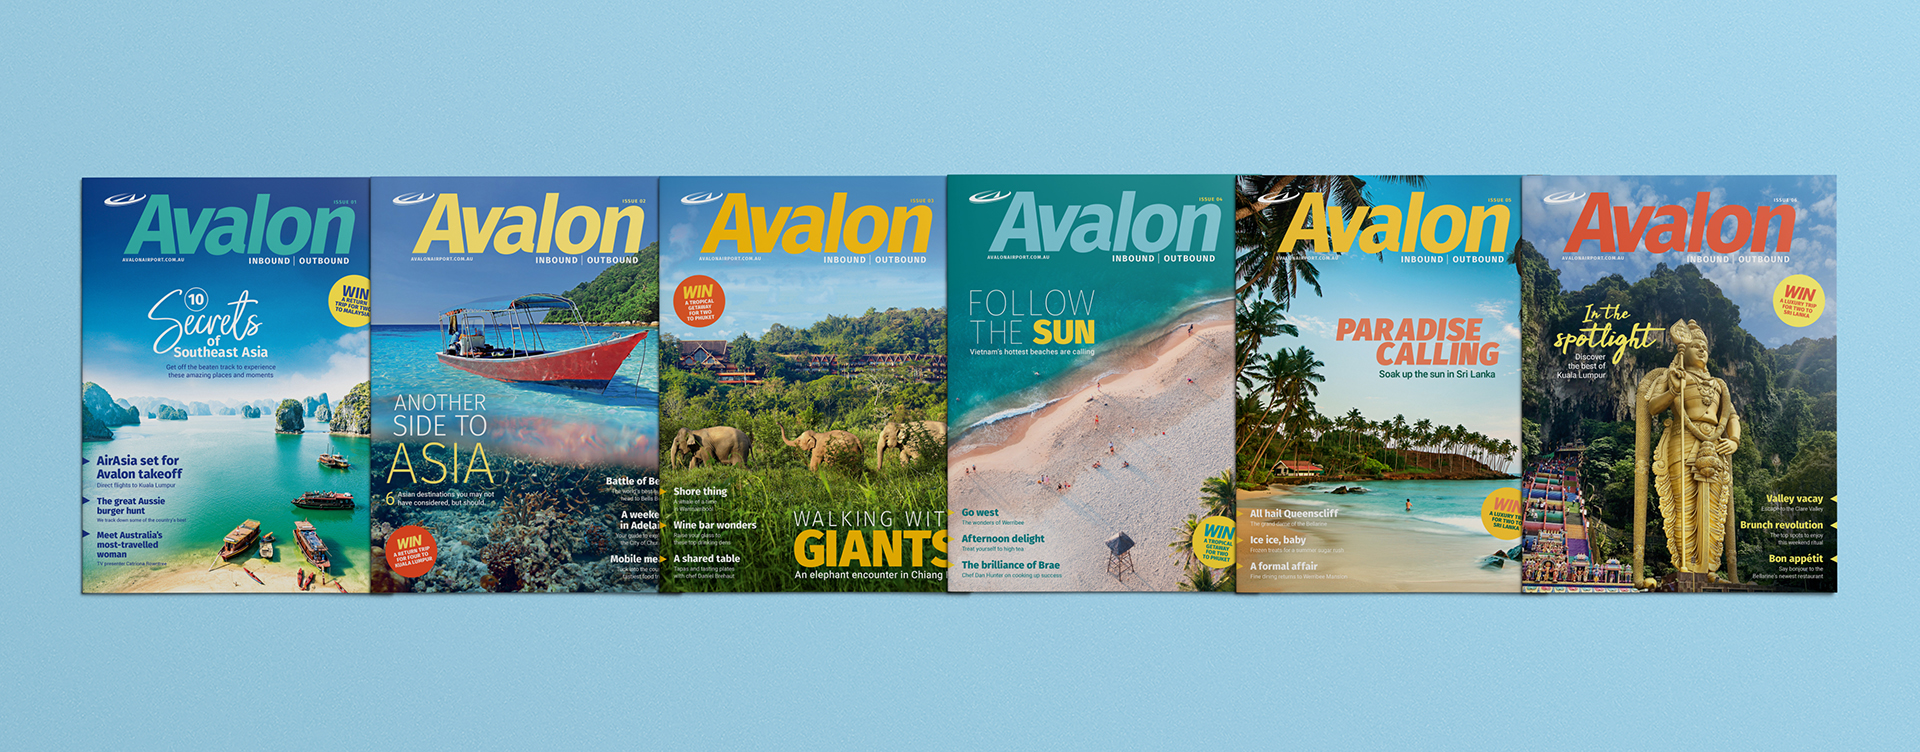 Avalon Inbound Outbound Travel and Lifestyle Magazine covers